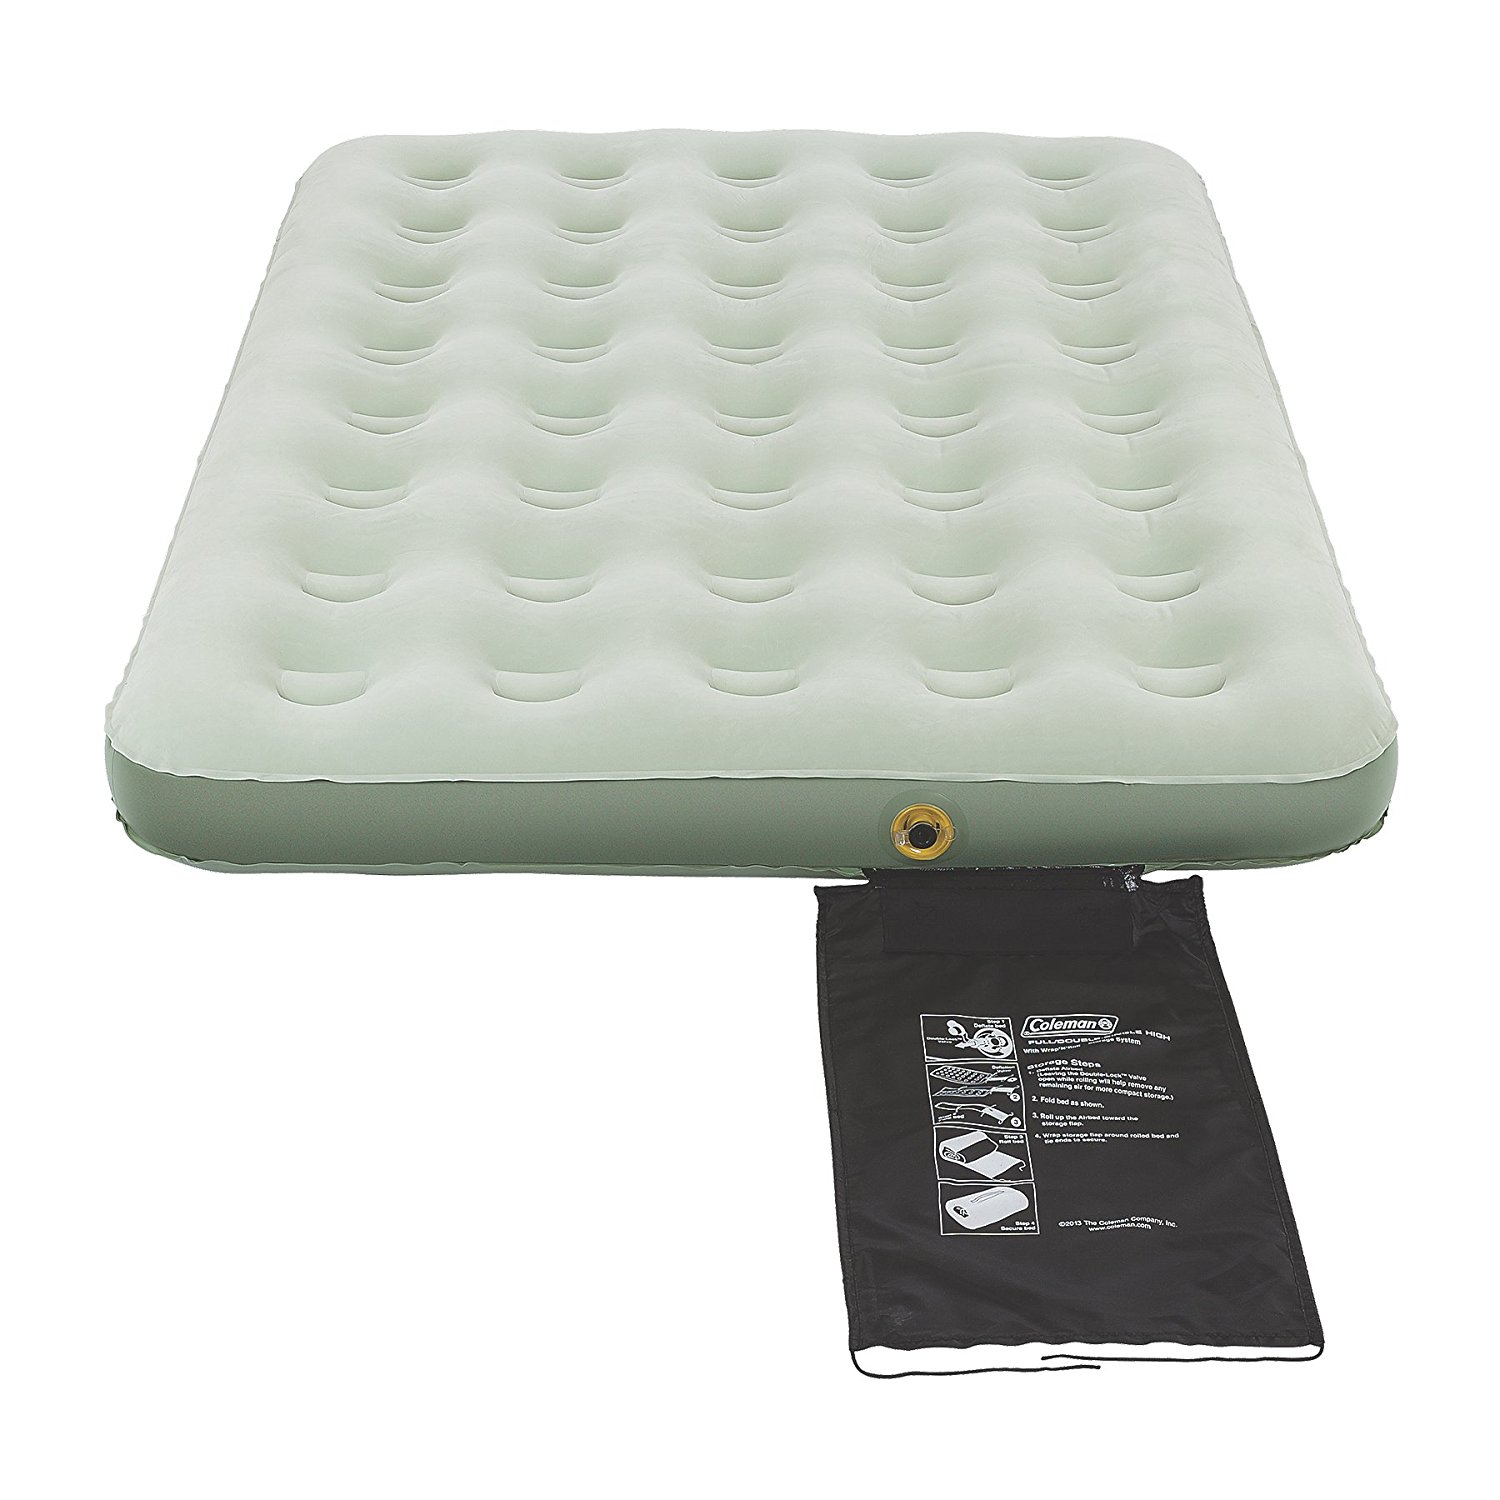 QuickBed Single High Airbed, Ship from USA,Brand Coleman